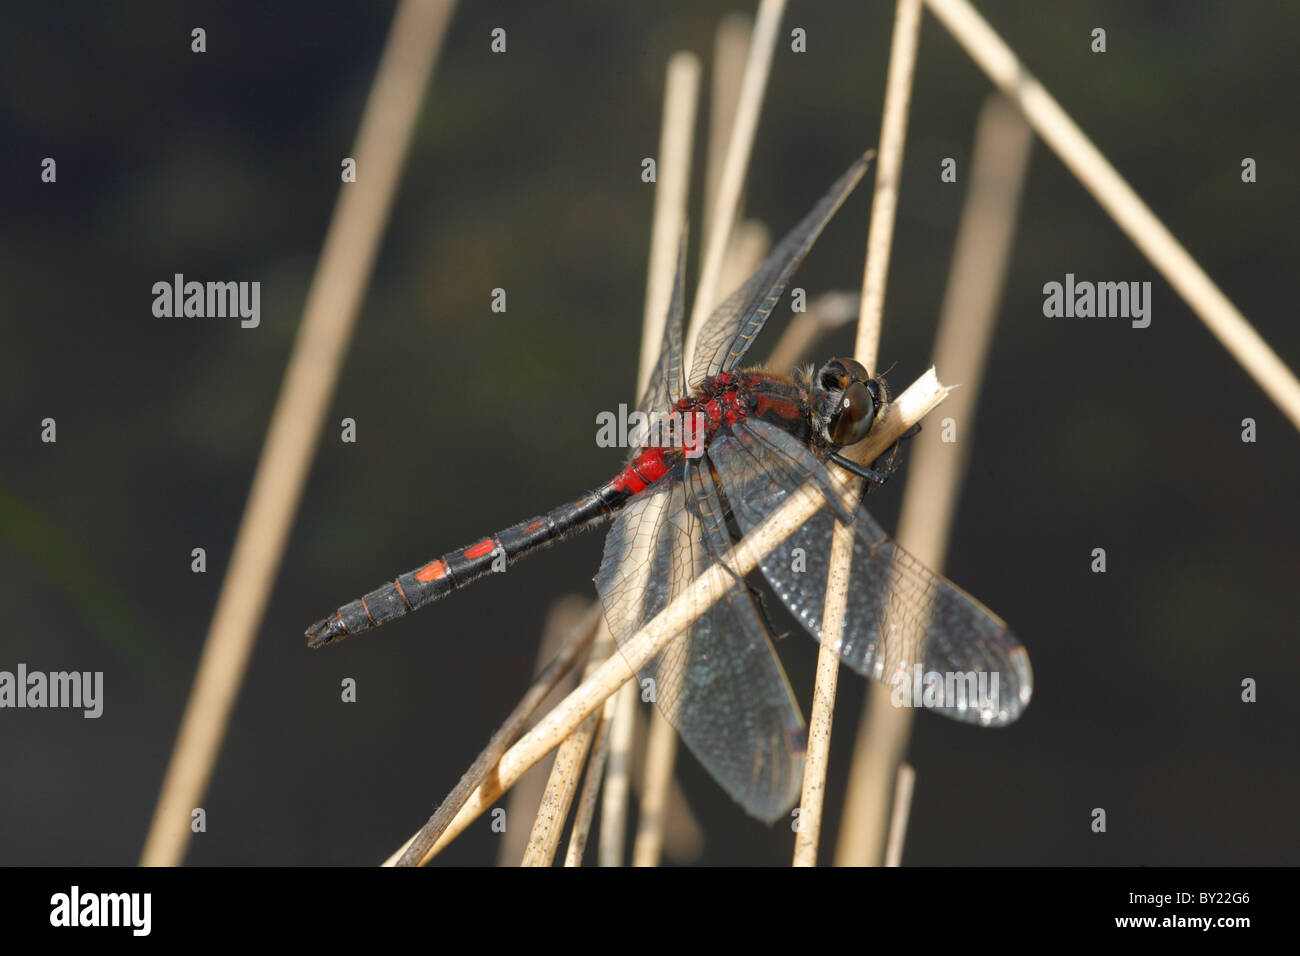 Male White-faced Darter Dragonfly (Leucorrhinia dubia). Whixall Moss National Nature Reserve, Shropshire, England. - Stock Image